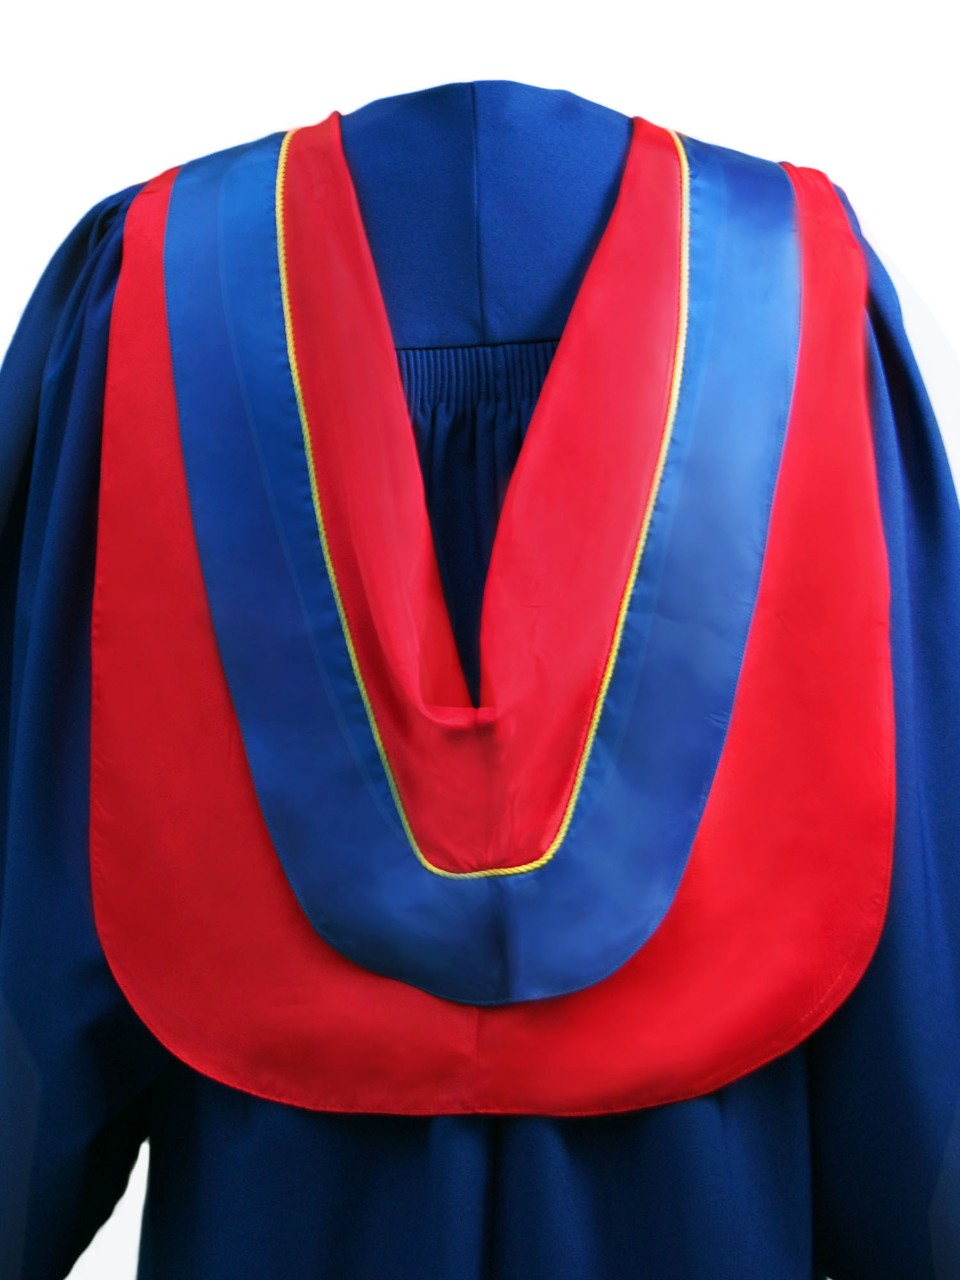 The Master of Publishing hood is red with wide blue border and yellow cording